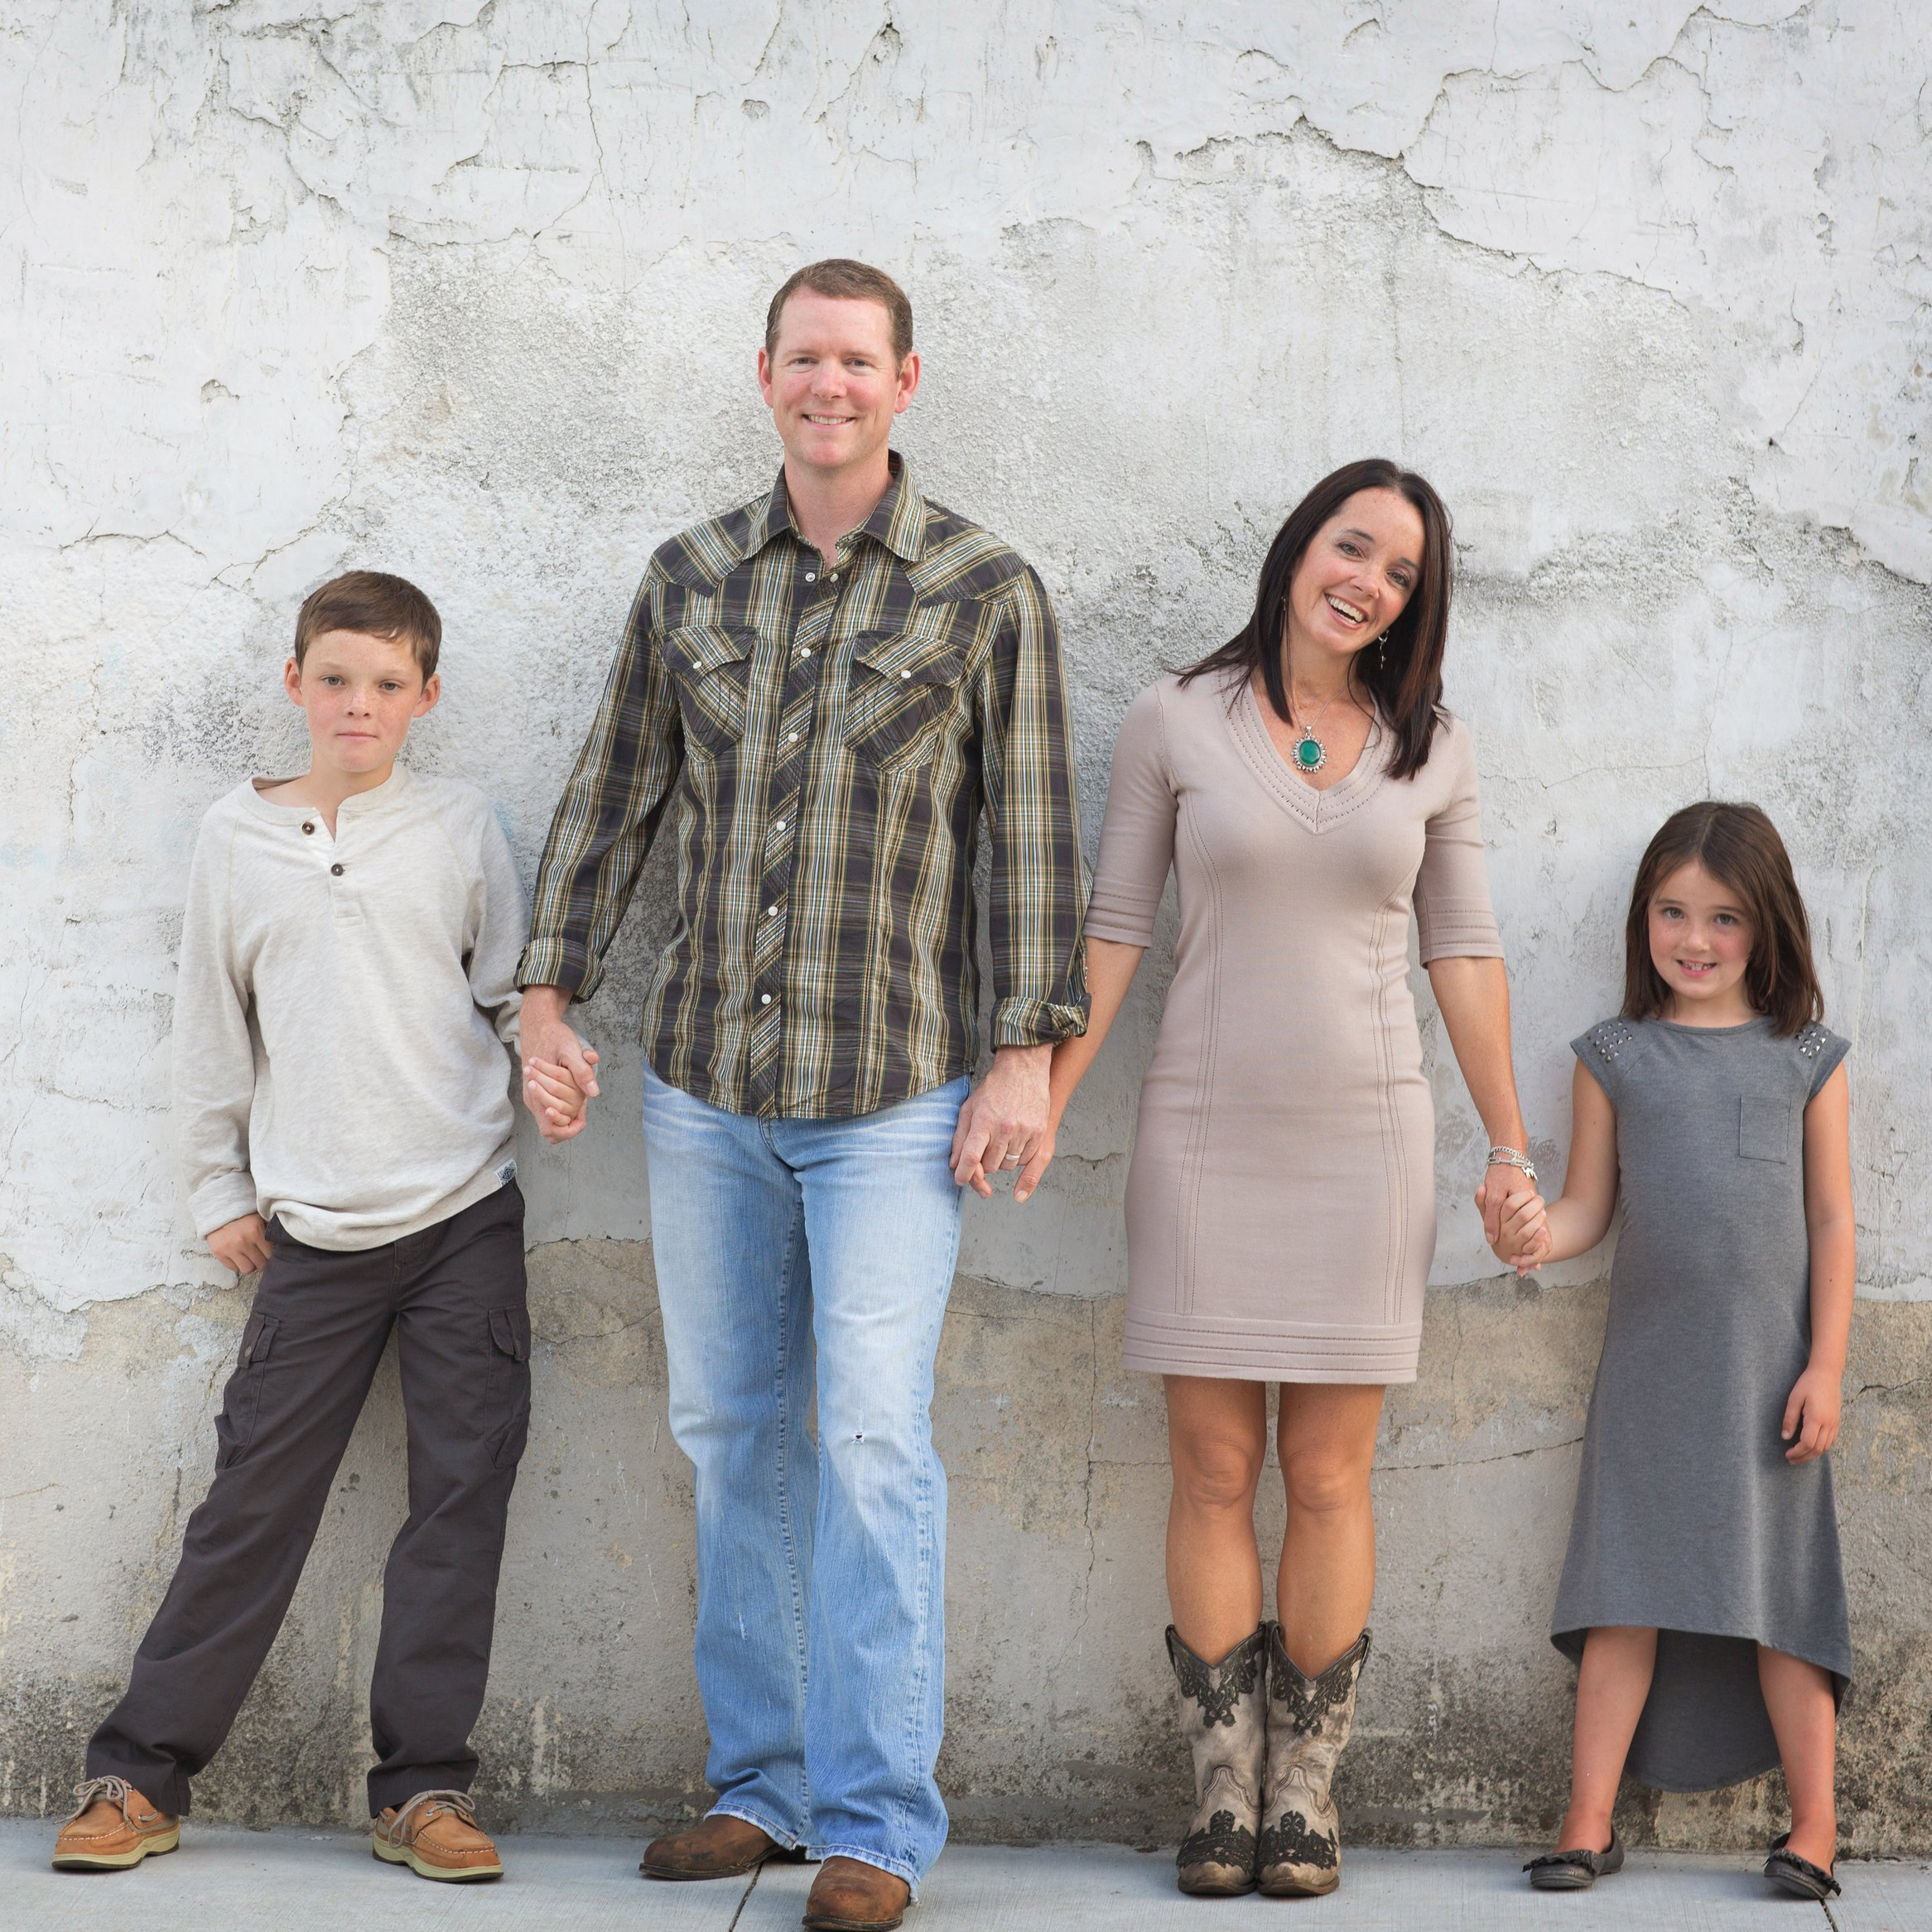 Dallas family photo infront of a grey wall